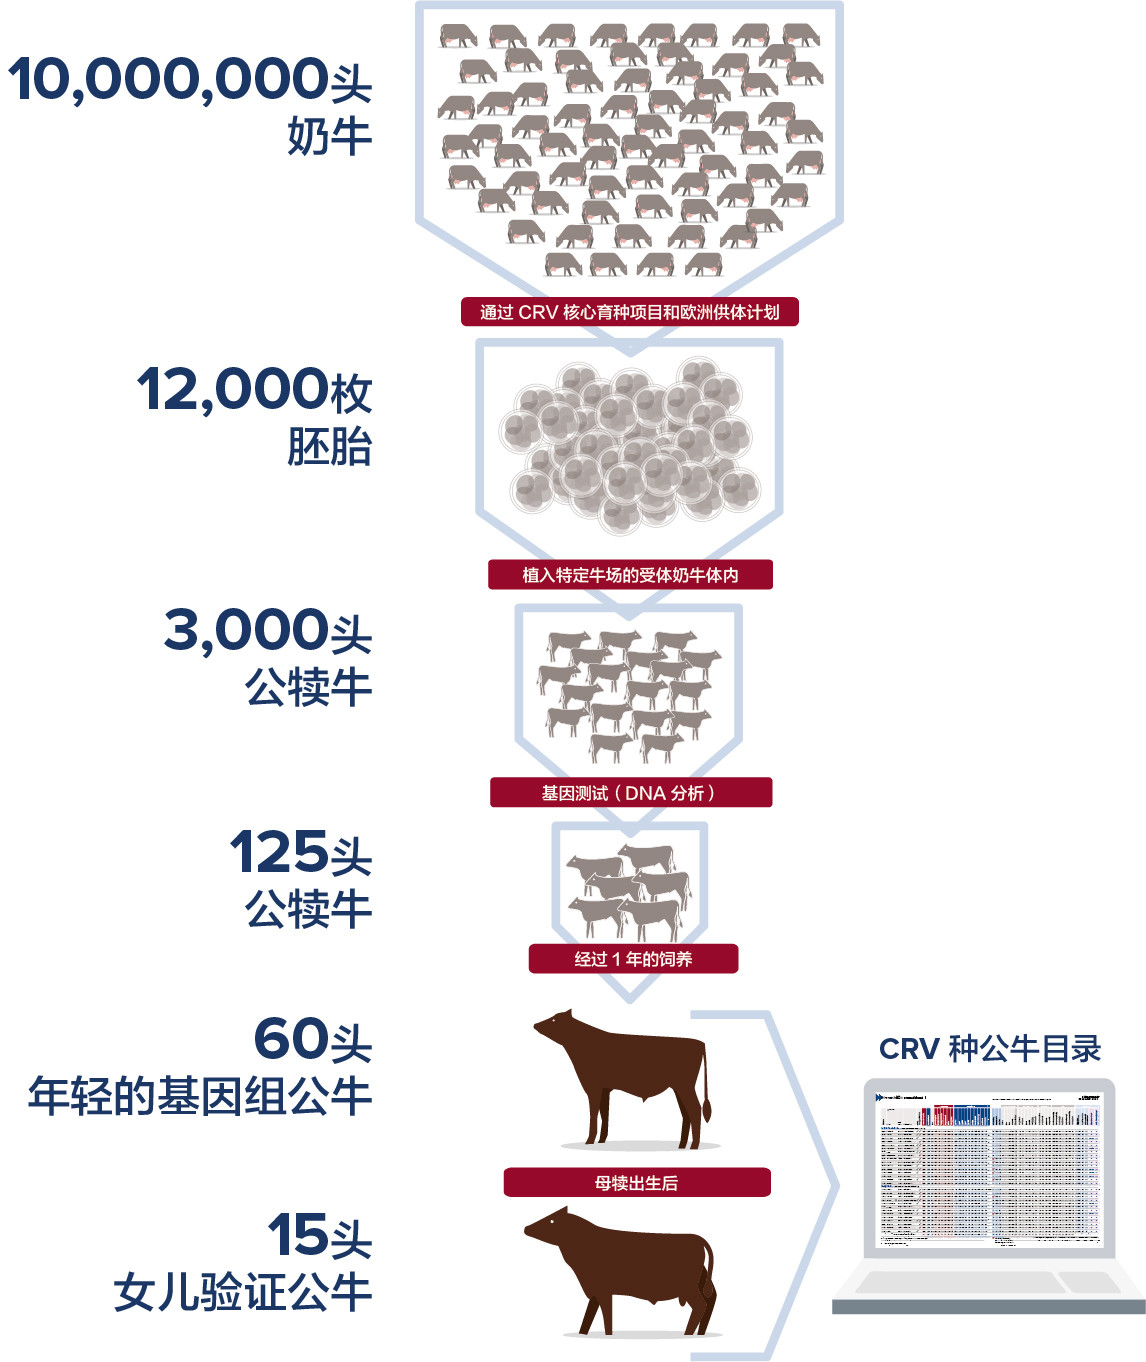 From 10 million cows to 60 InSire bulls